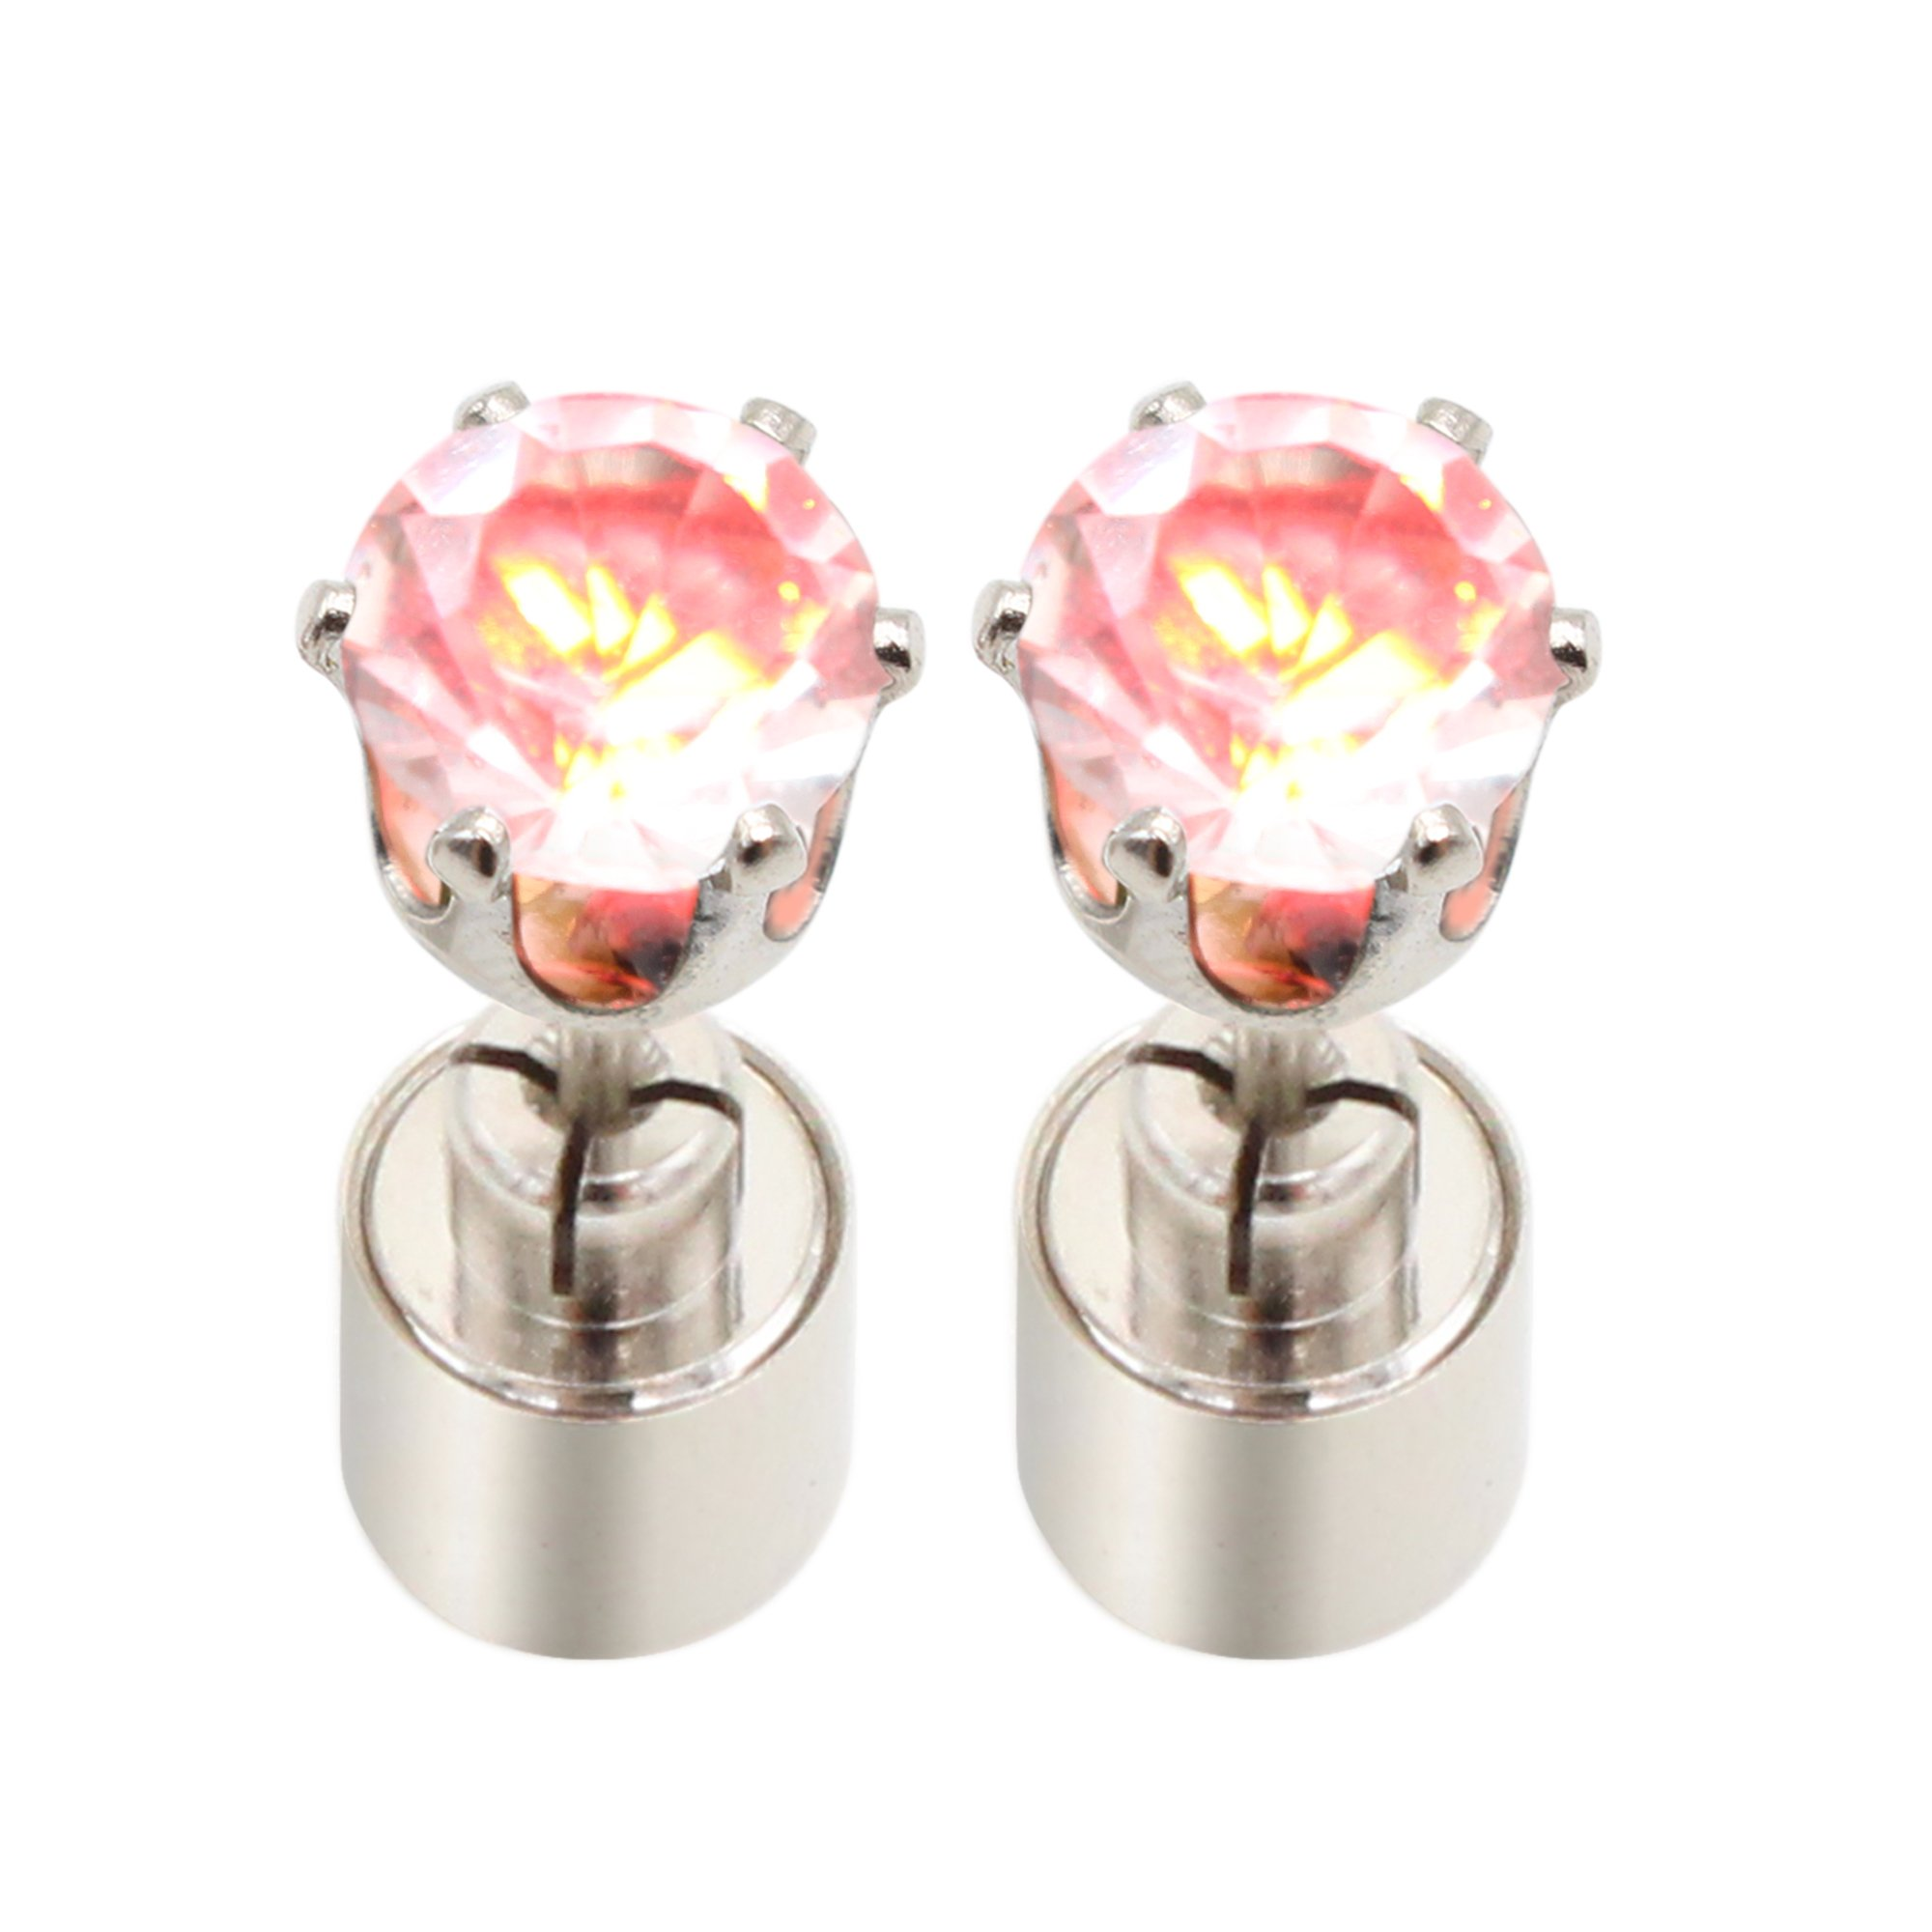 Led Earrings Bright Stylish Led Earring Glowing Light Up Earrings Ear Drop Crystal Pendant Glow Studs Flashing Stainless Steel Earrings Stud Dance Party Accessories Hallowmas Christmas Gifts